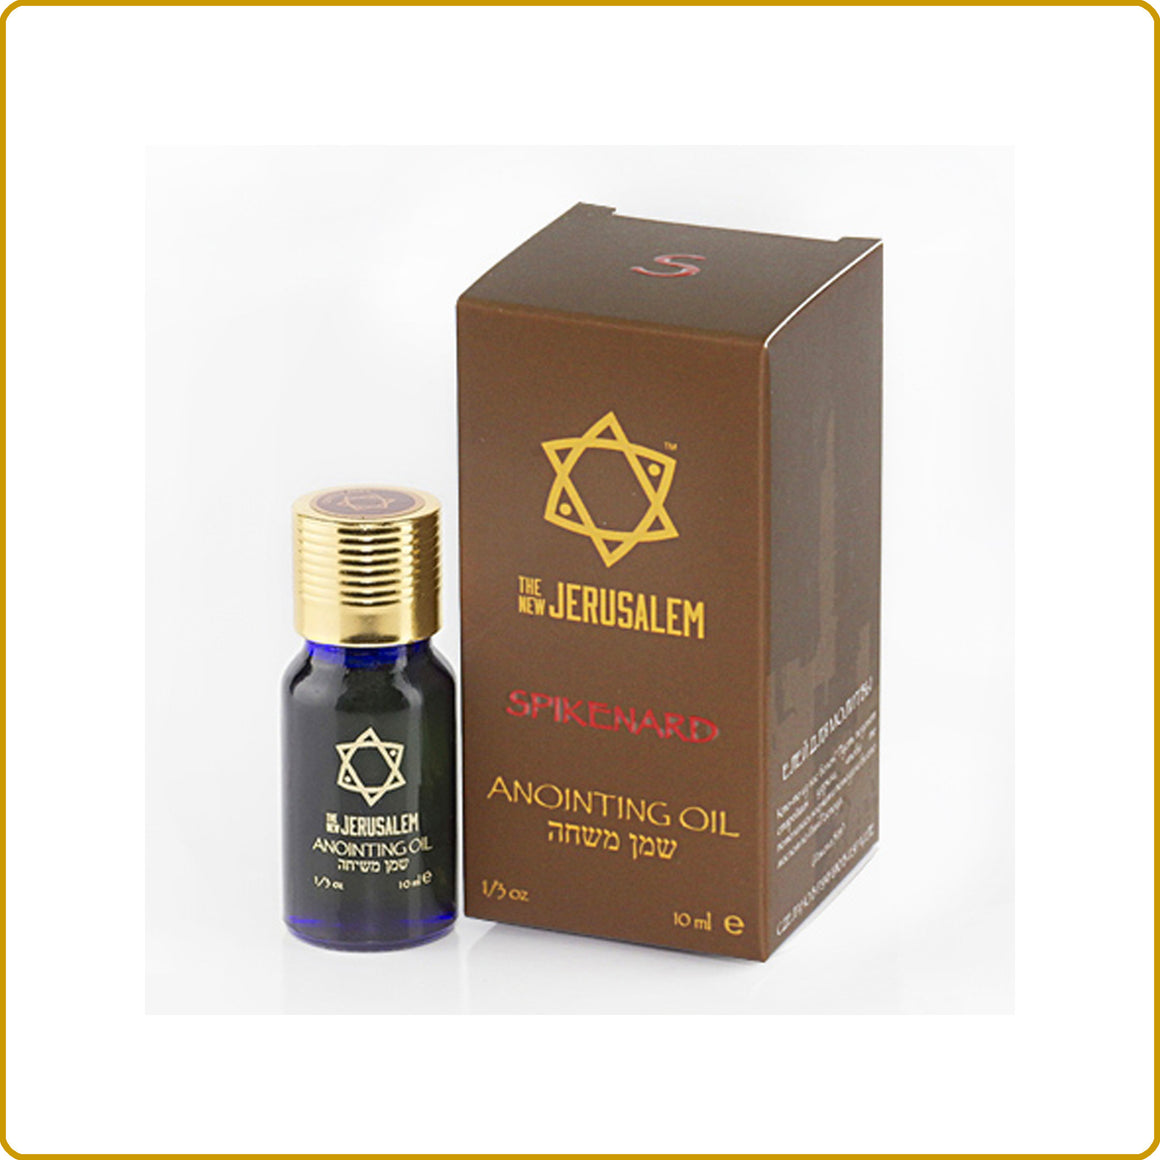 Spikenard Blessing Oil 10ml.